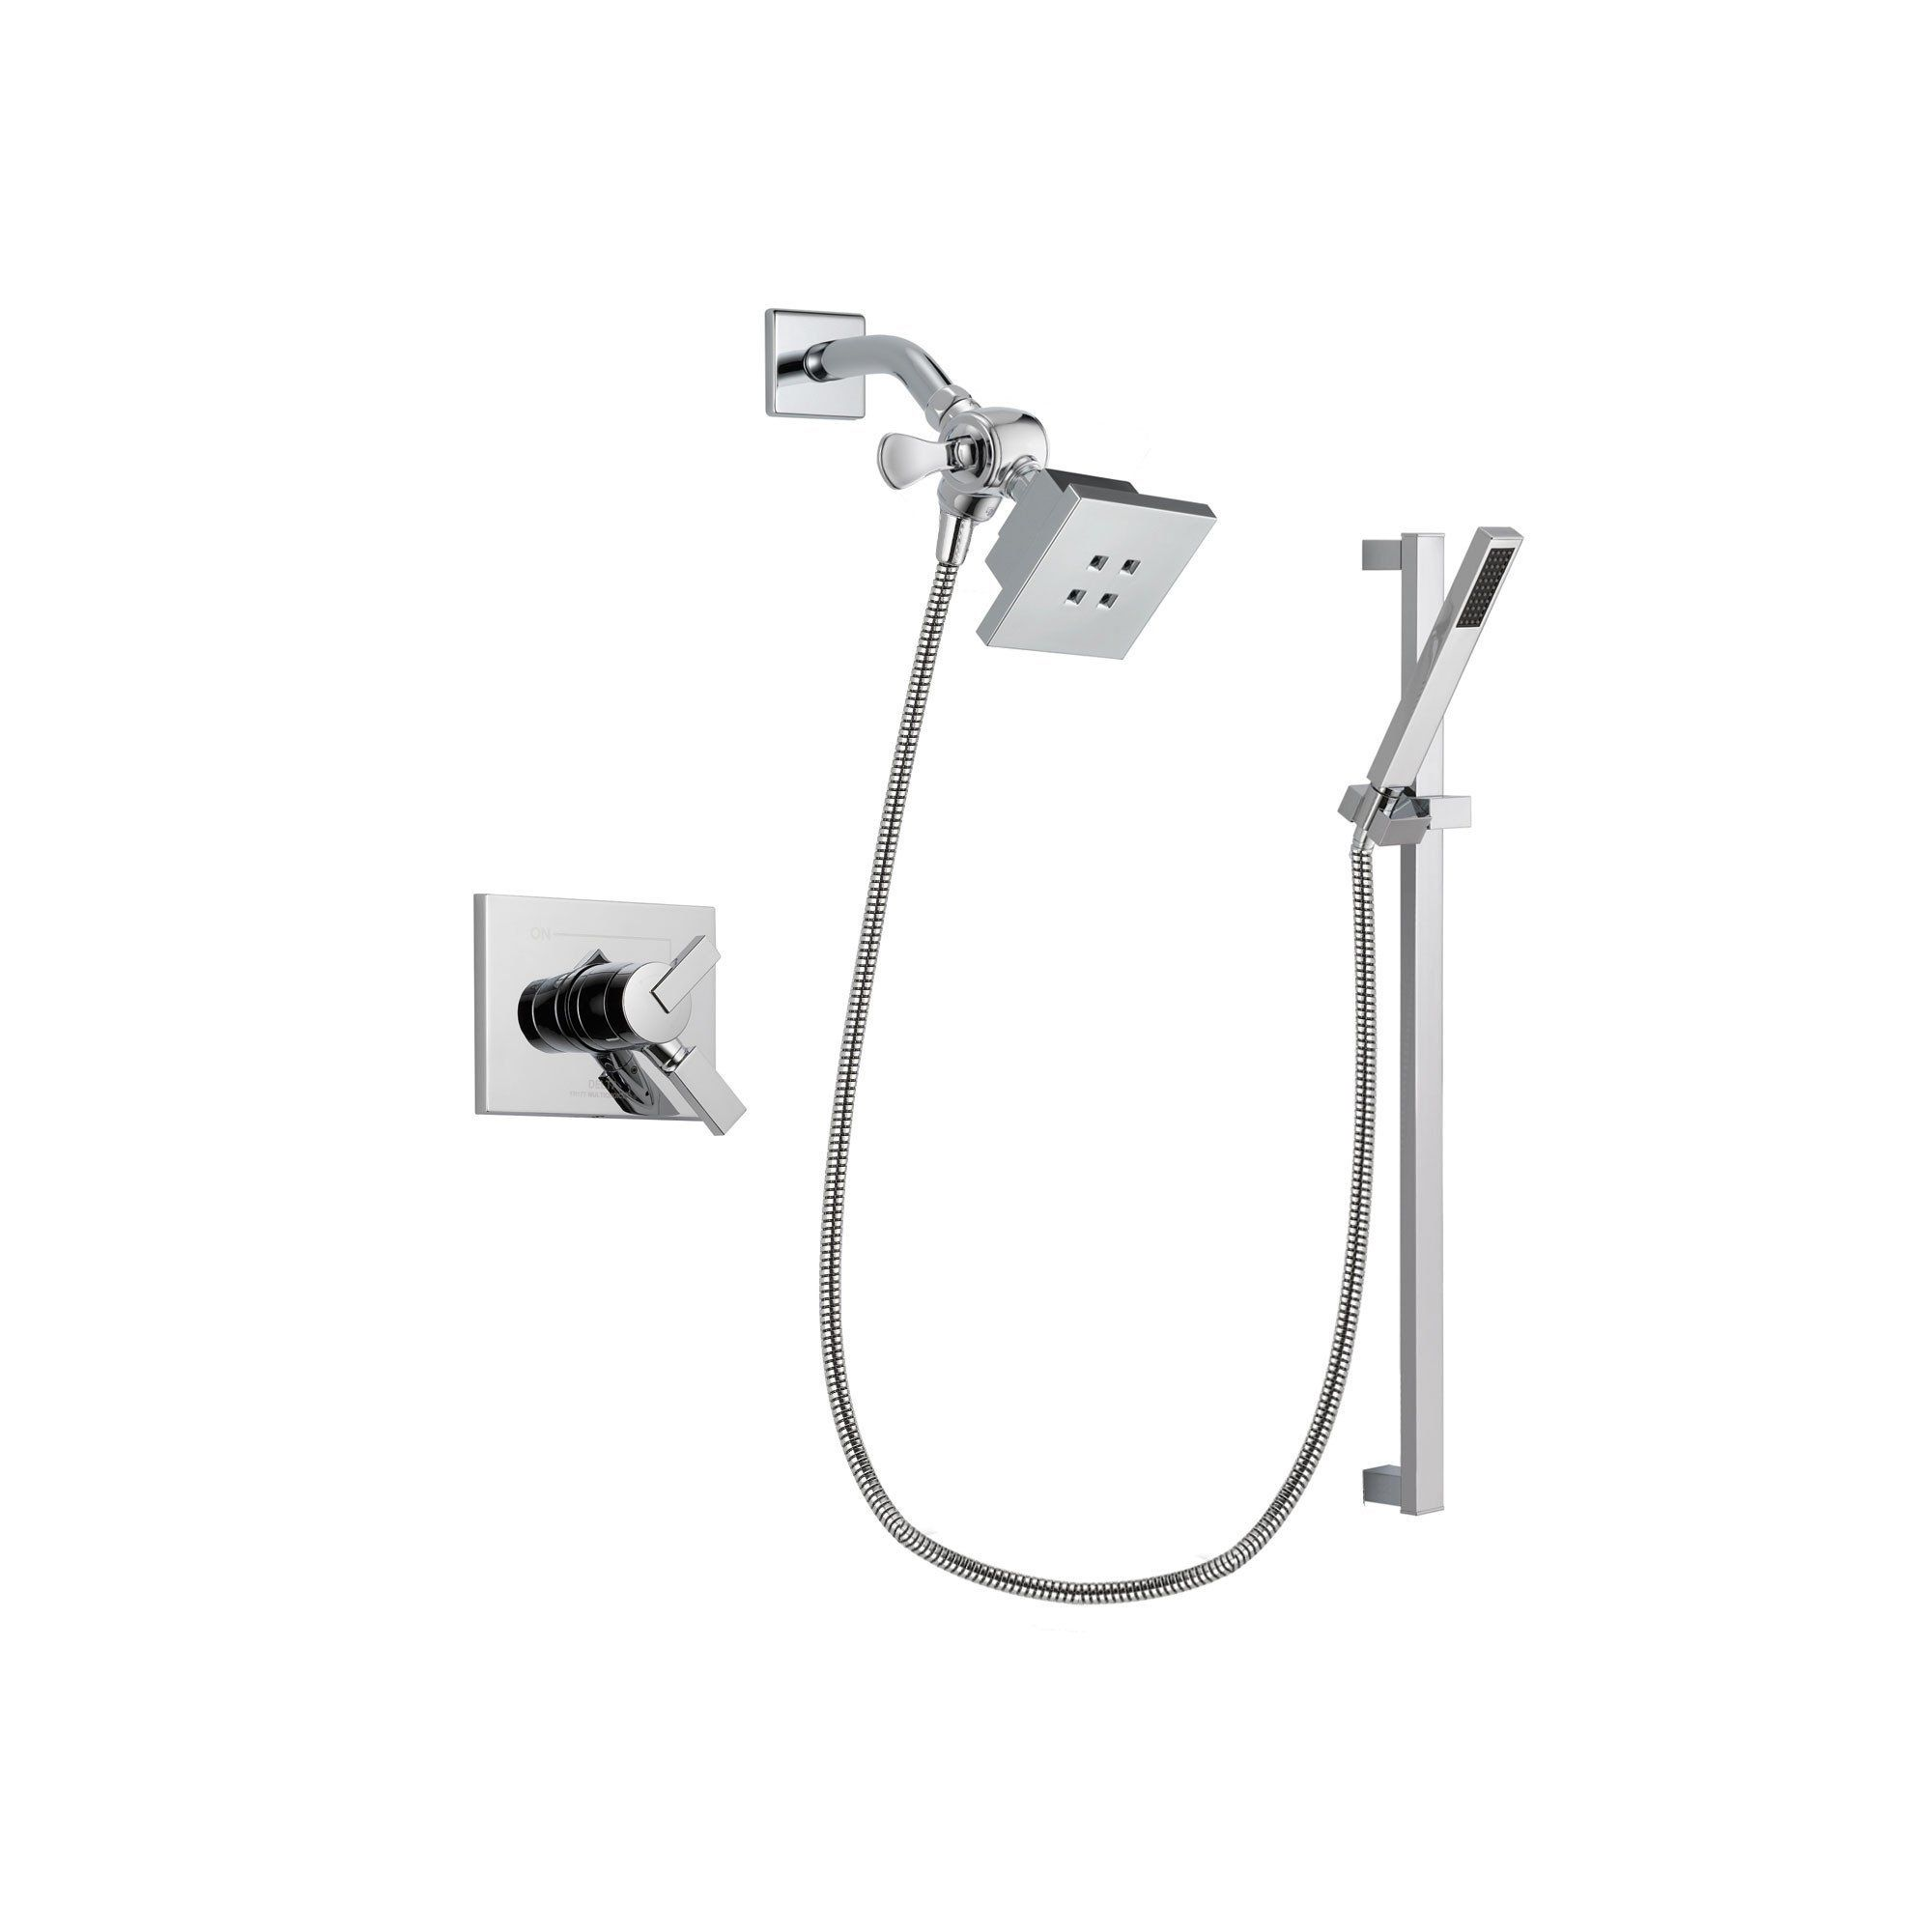 Delta Vero Chrome Finish Dual Control Shower Faucet System Package With  Square Showerhead And Modern Square Wall Mount Slide Bar With Handheld  Shower Spray ...